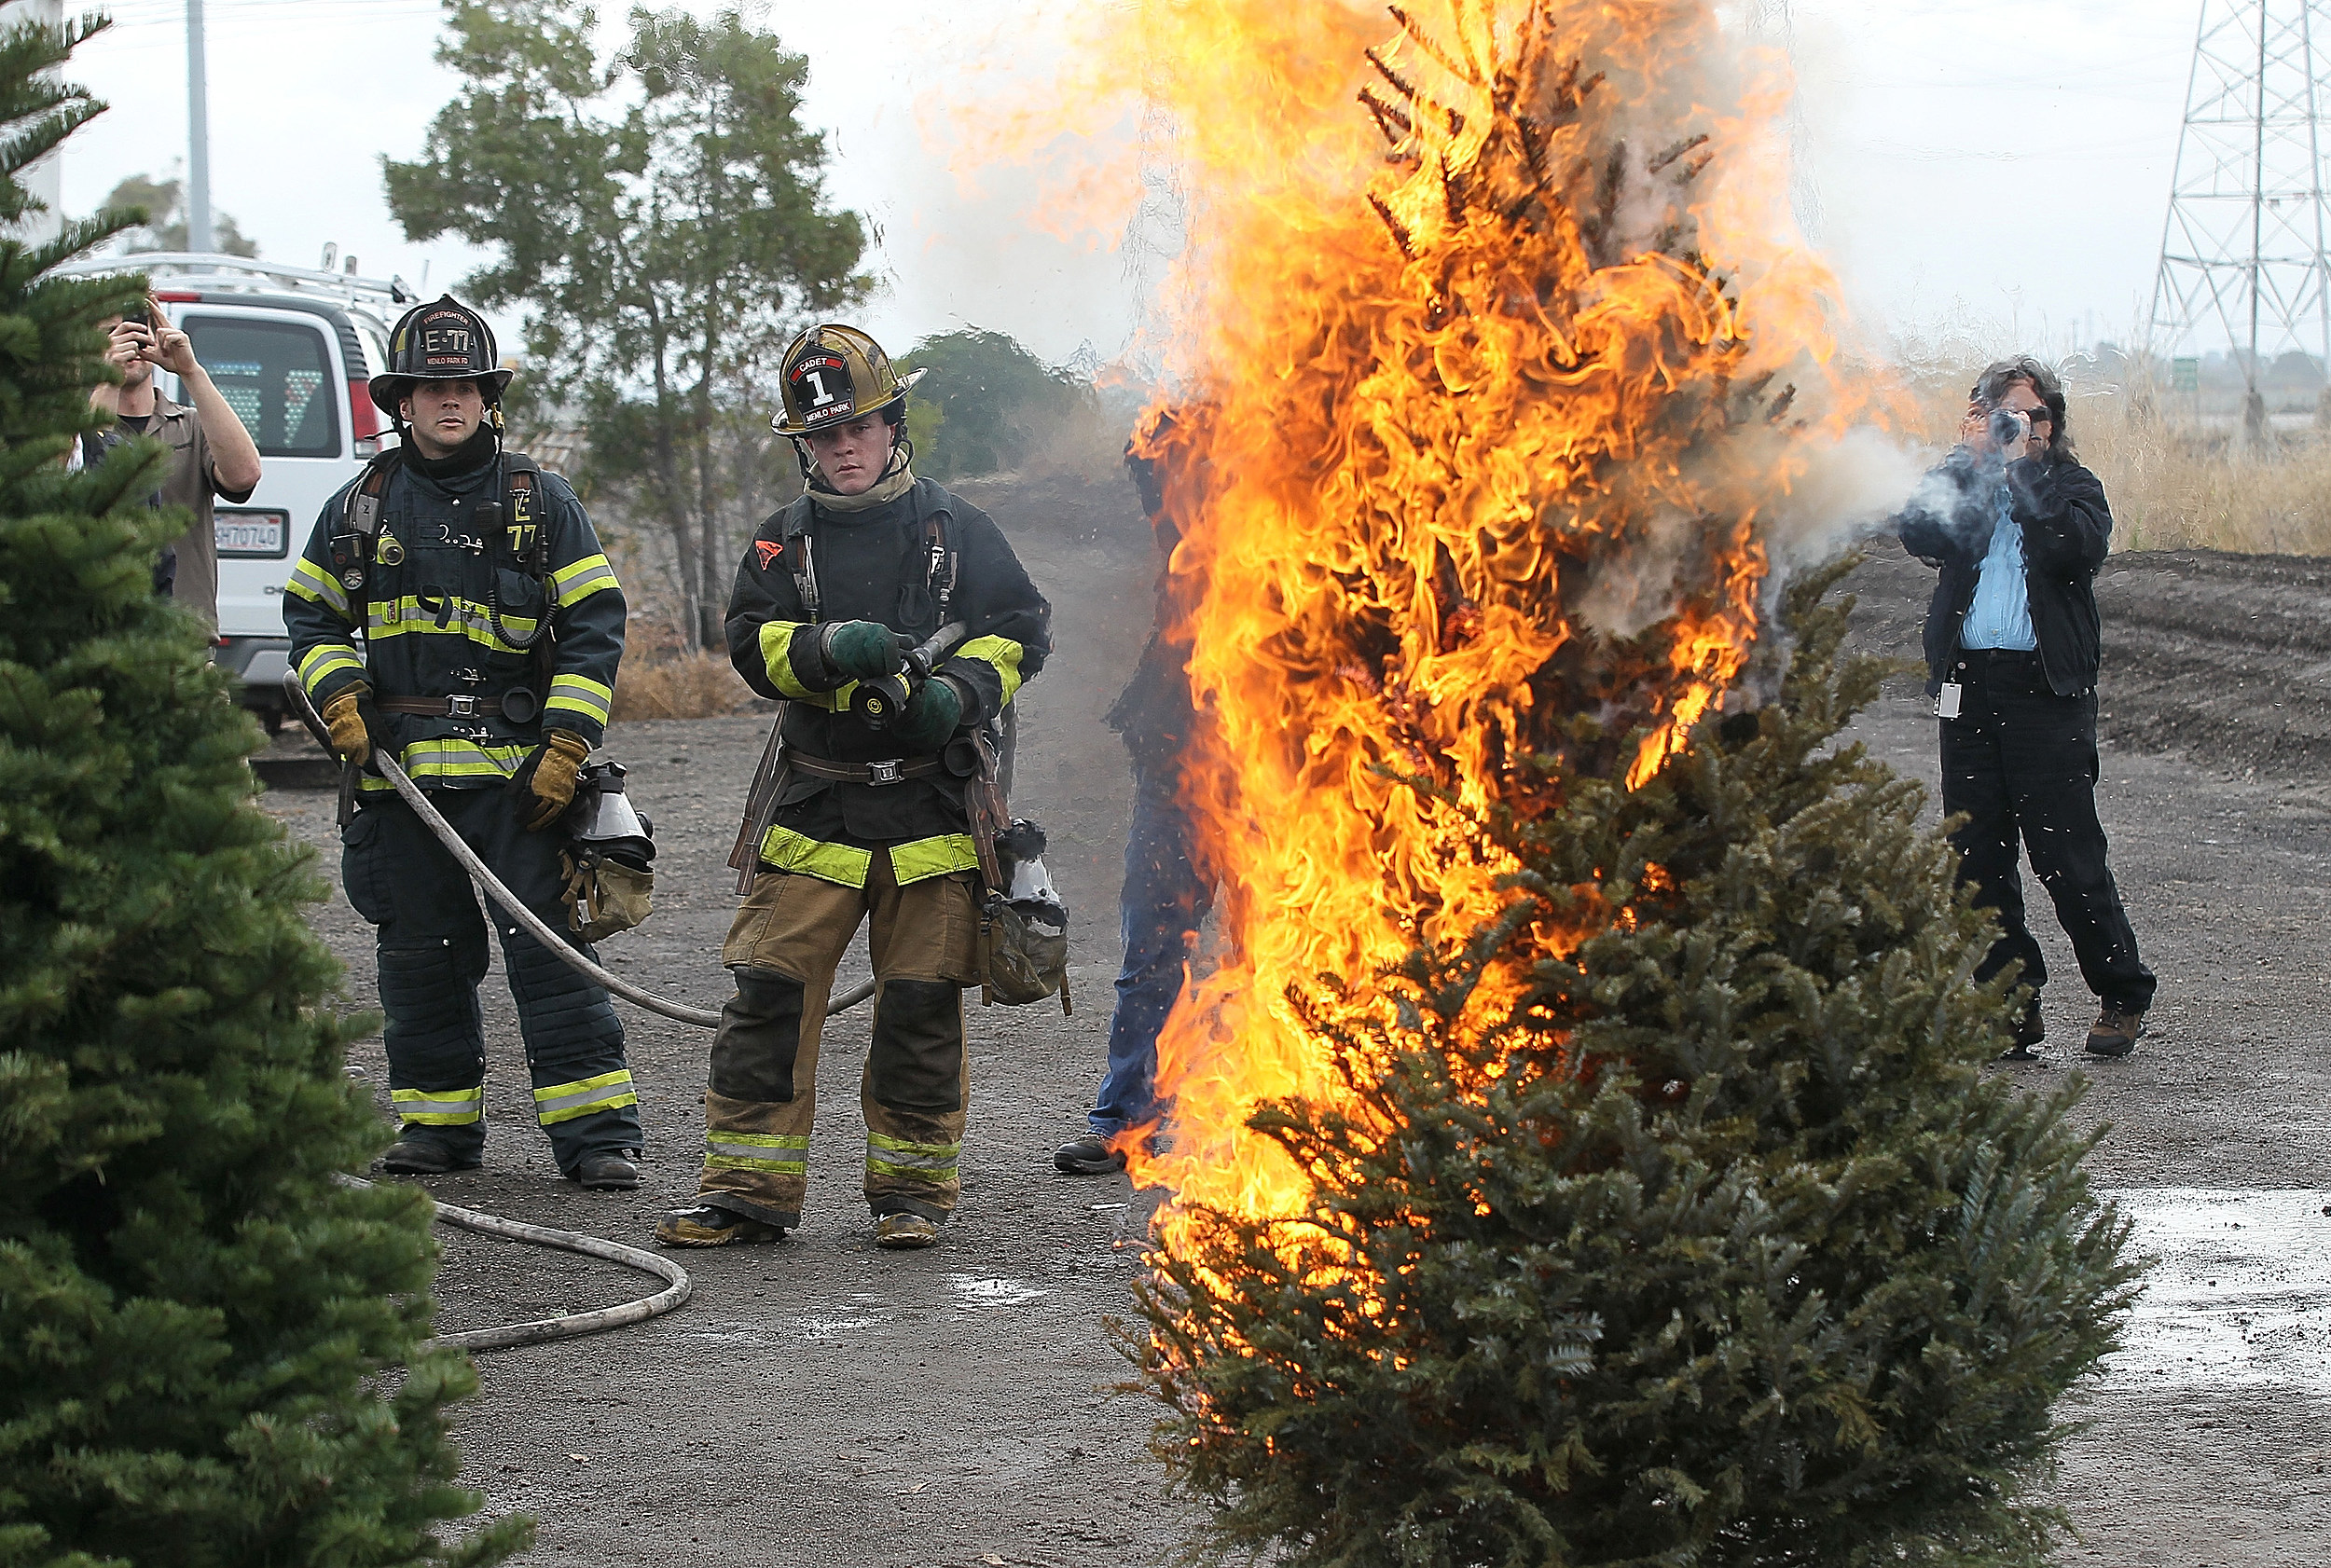 Do You Still Have Your Christmas Tree Up? - Christmas Trees On Fire